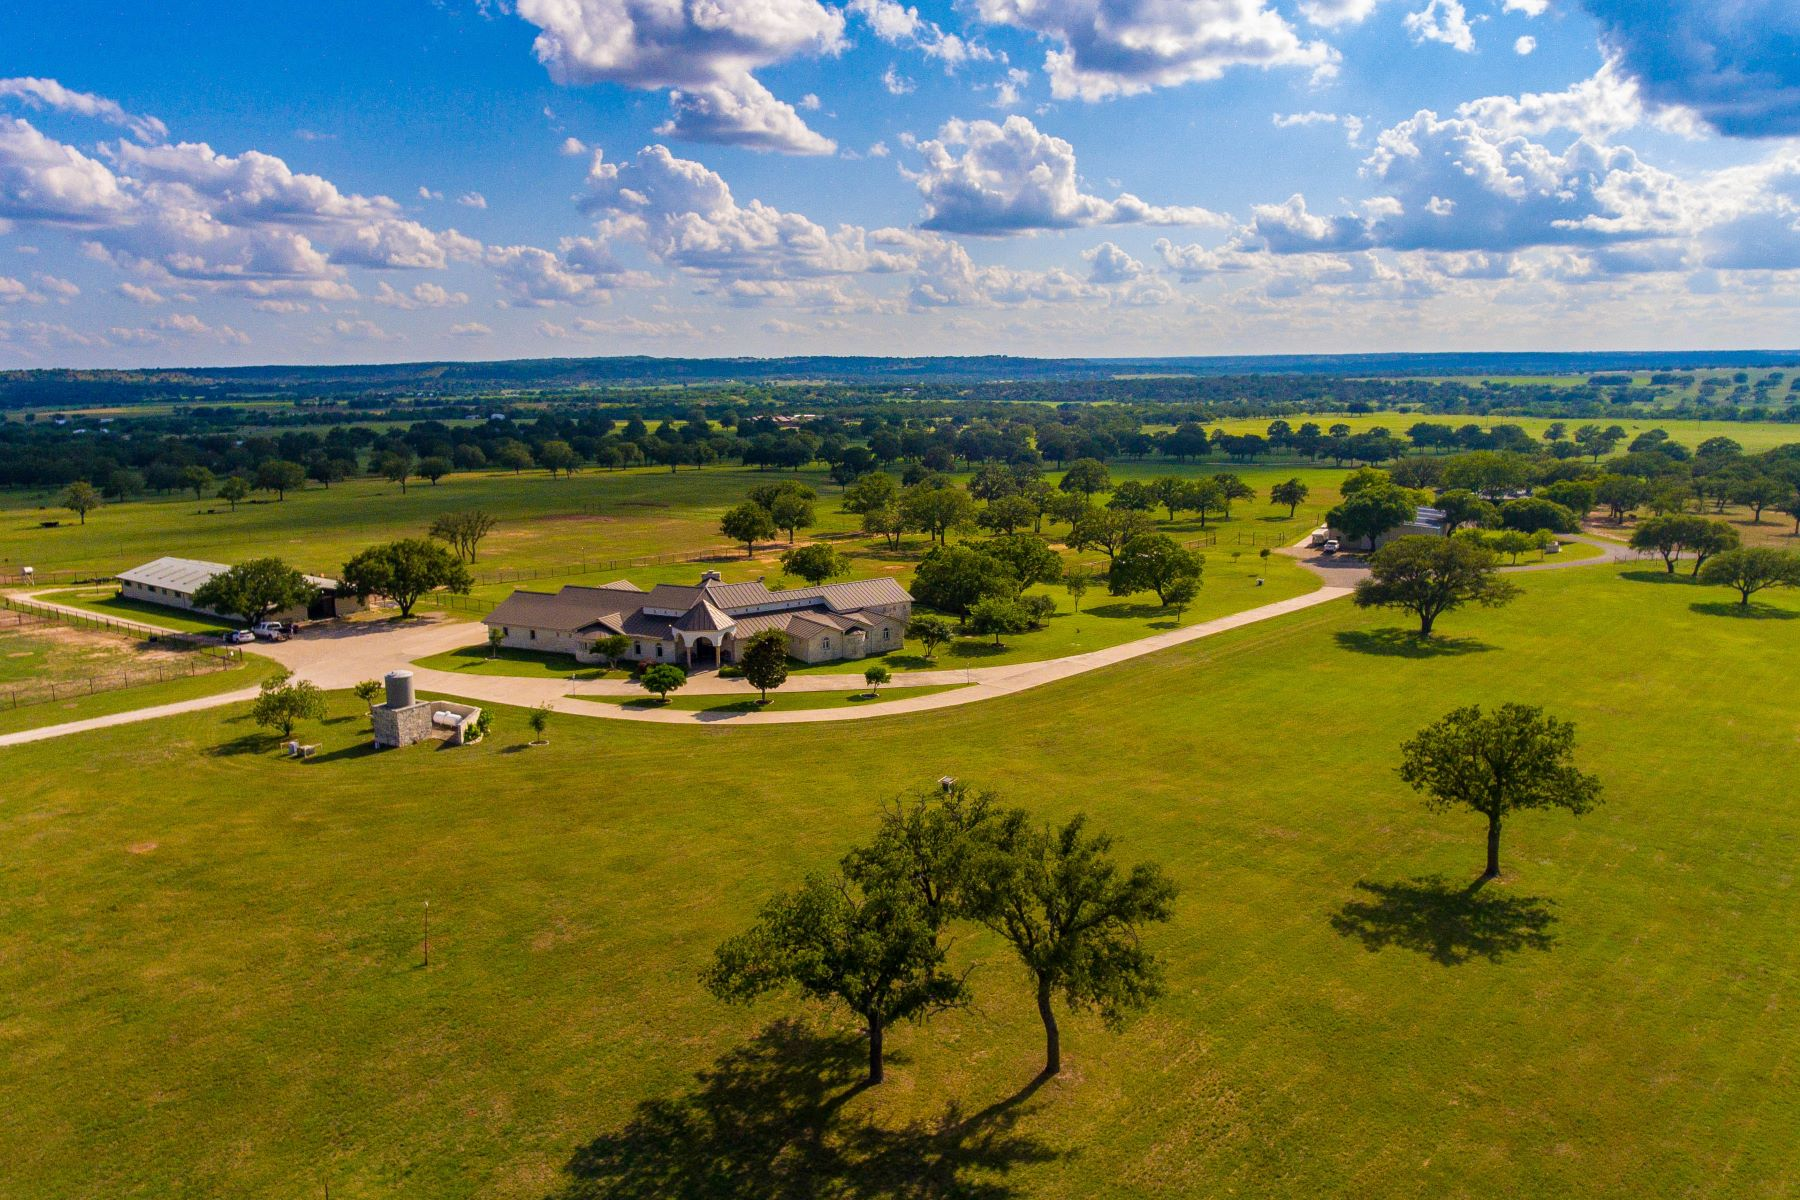 Ferme / Ranch / Plantation pour l Vente à Grand Estate in Fredericksburg, Texas 7535 FM 2093, Fredericksburg, Texas 78624 États-Unis